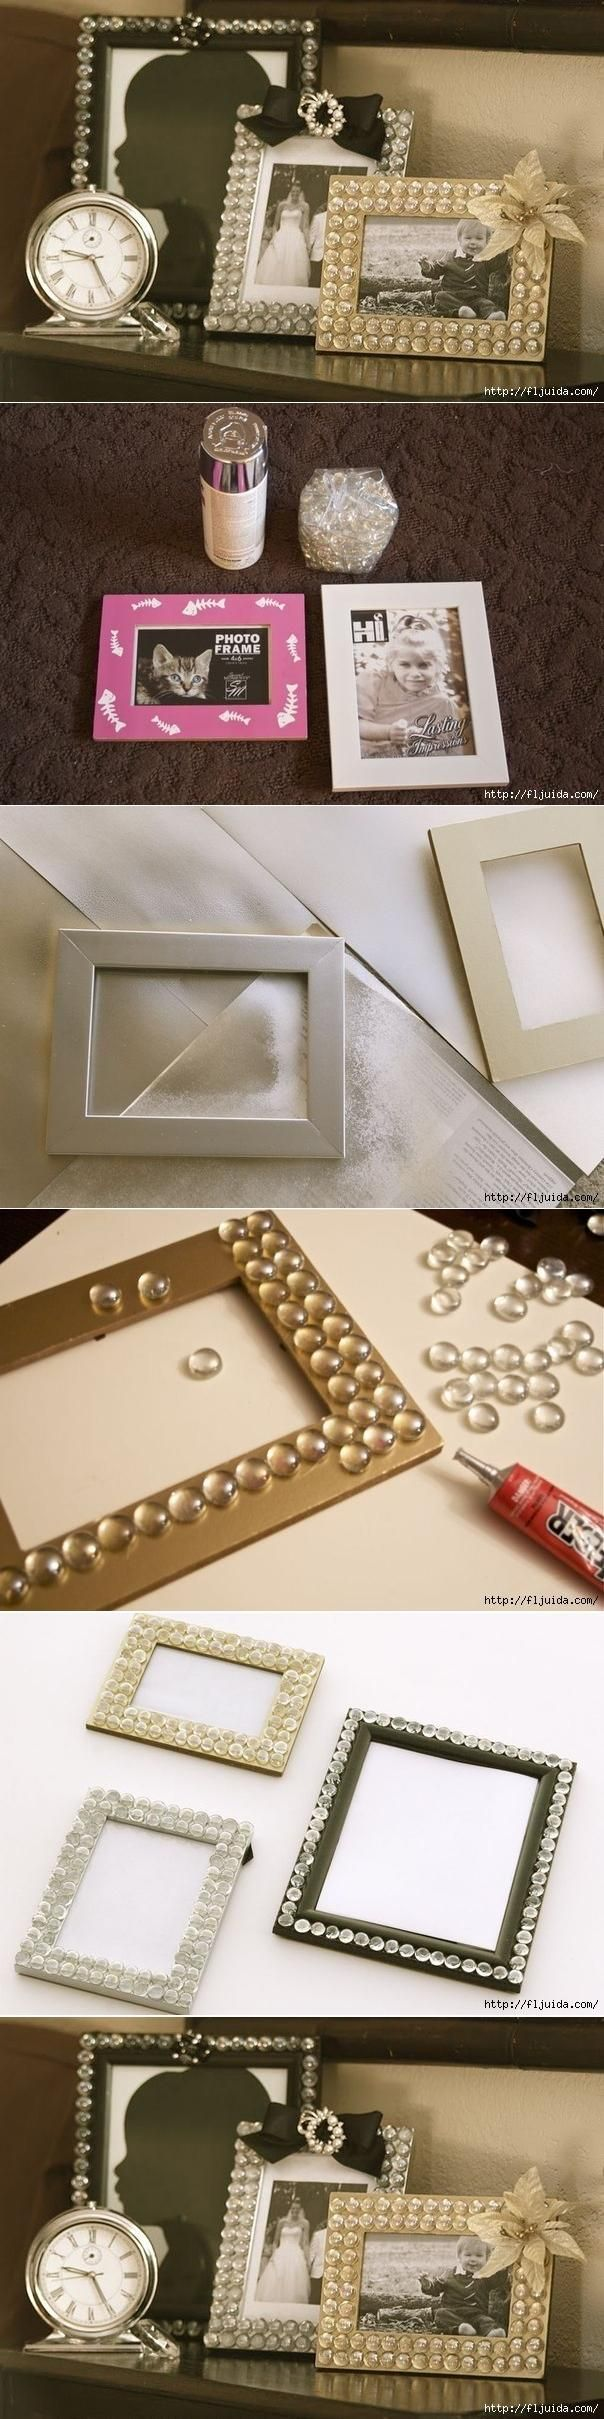 DIY Glamorous Picture Frame with glass gems from the dollar tree store. Christmas or mothers day gifts from the cub scout!